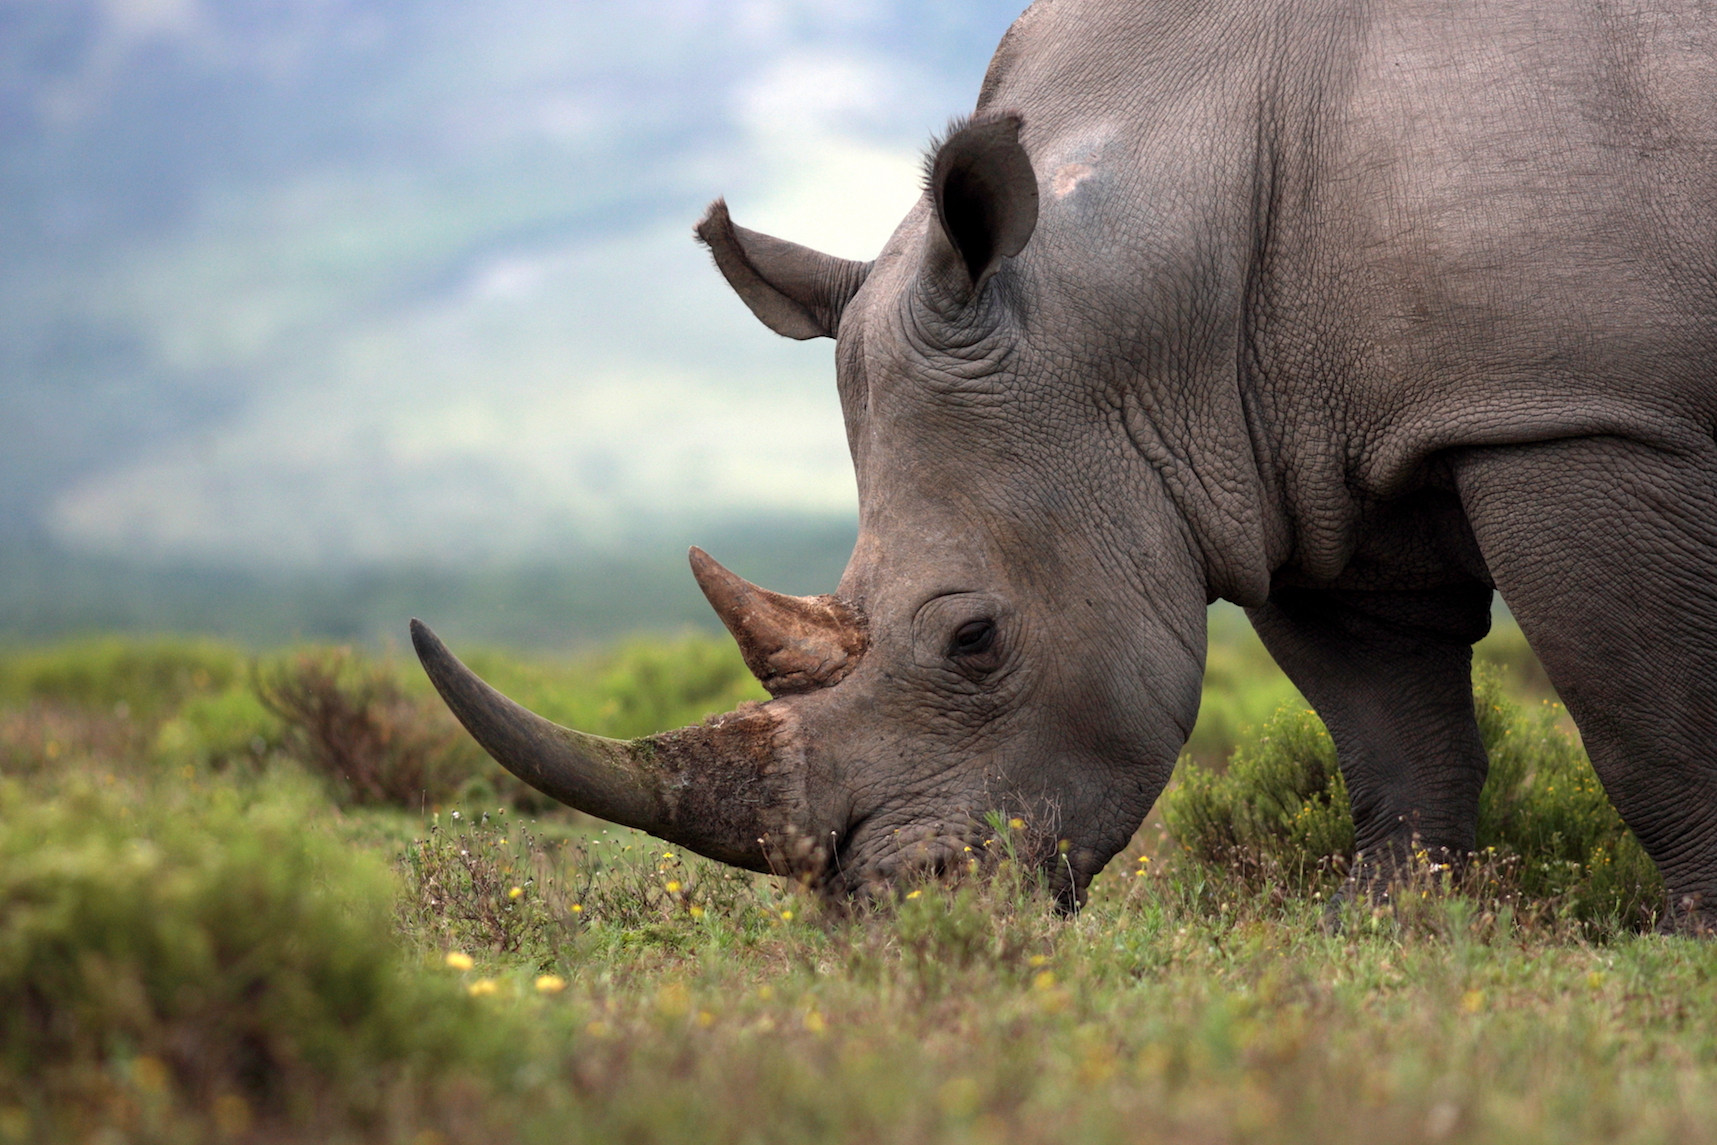 Last week, a white rhinoceros named Vince was killed by poachers at a wildlife park near Paris. Demand for the horn has skyrocketed in Asia and Africa.